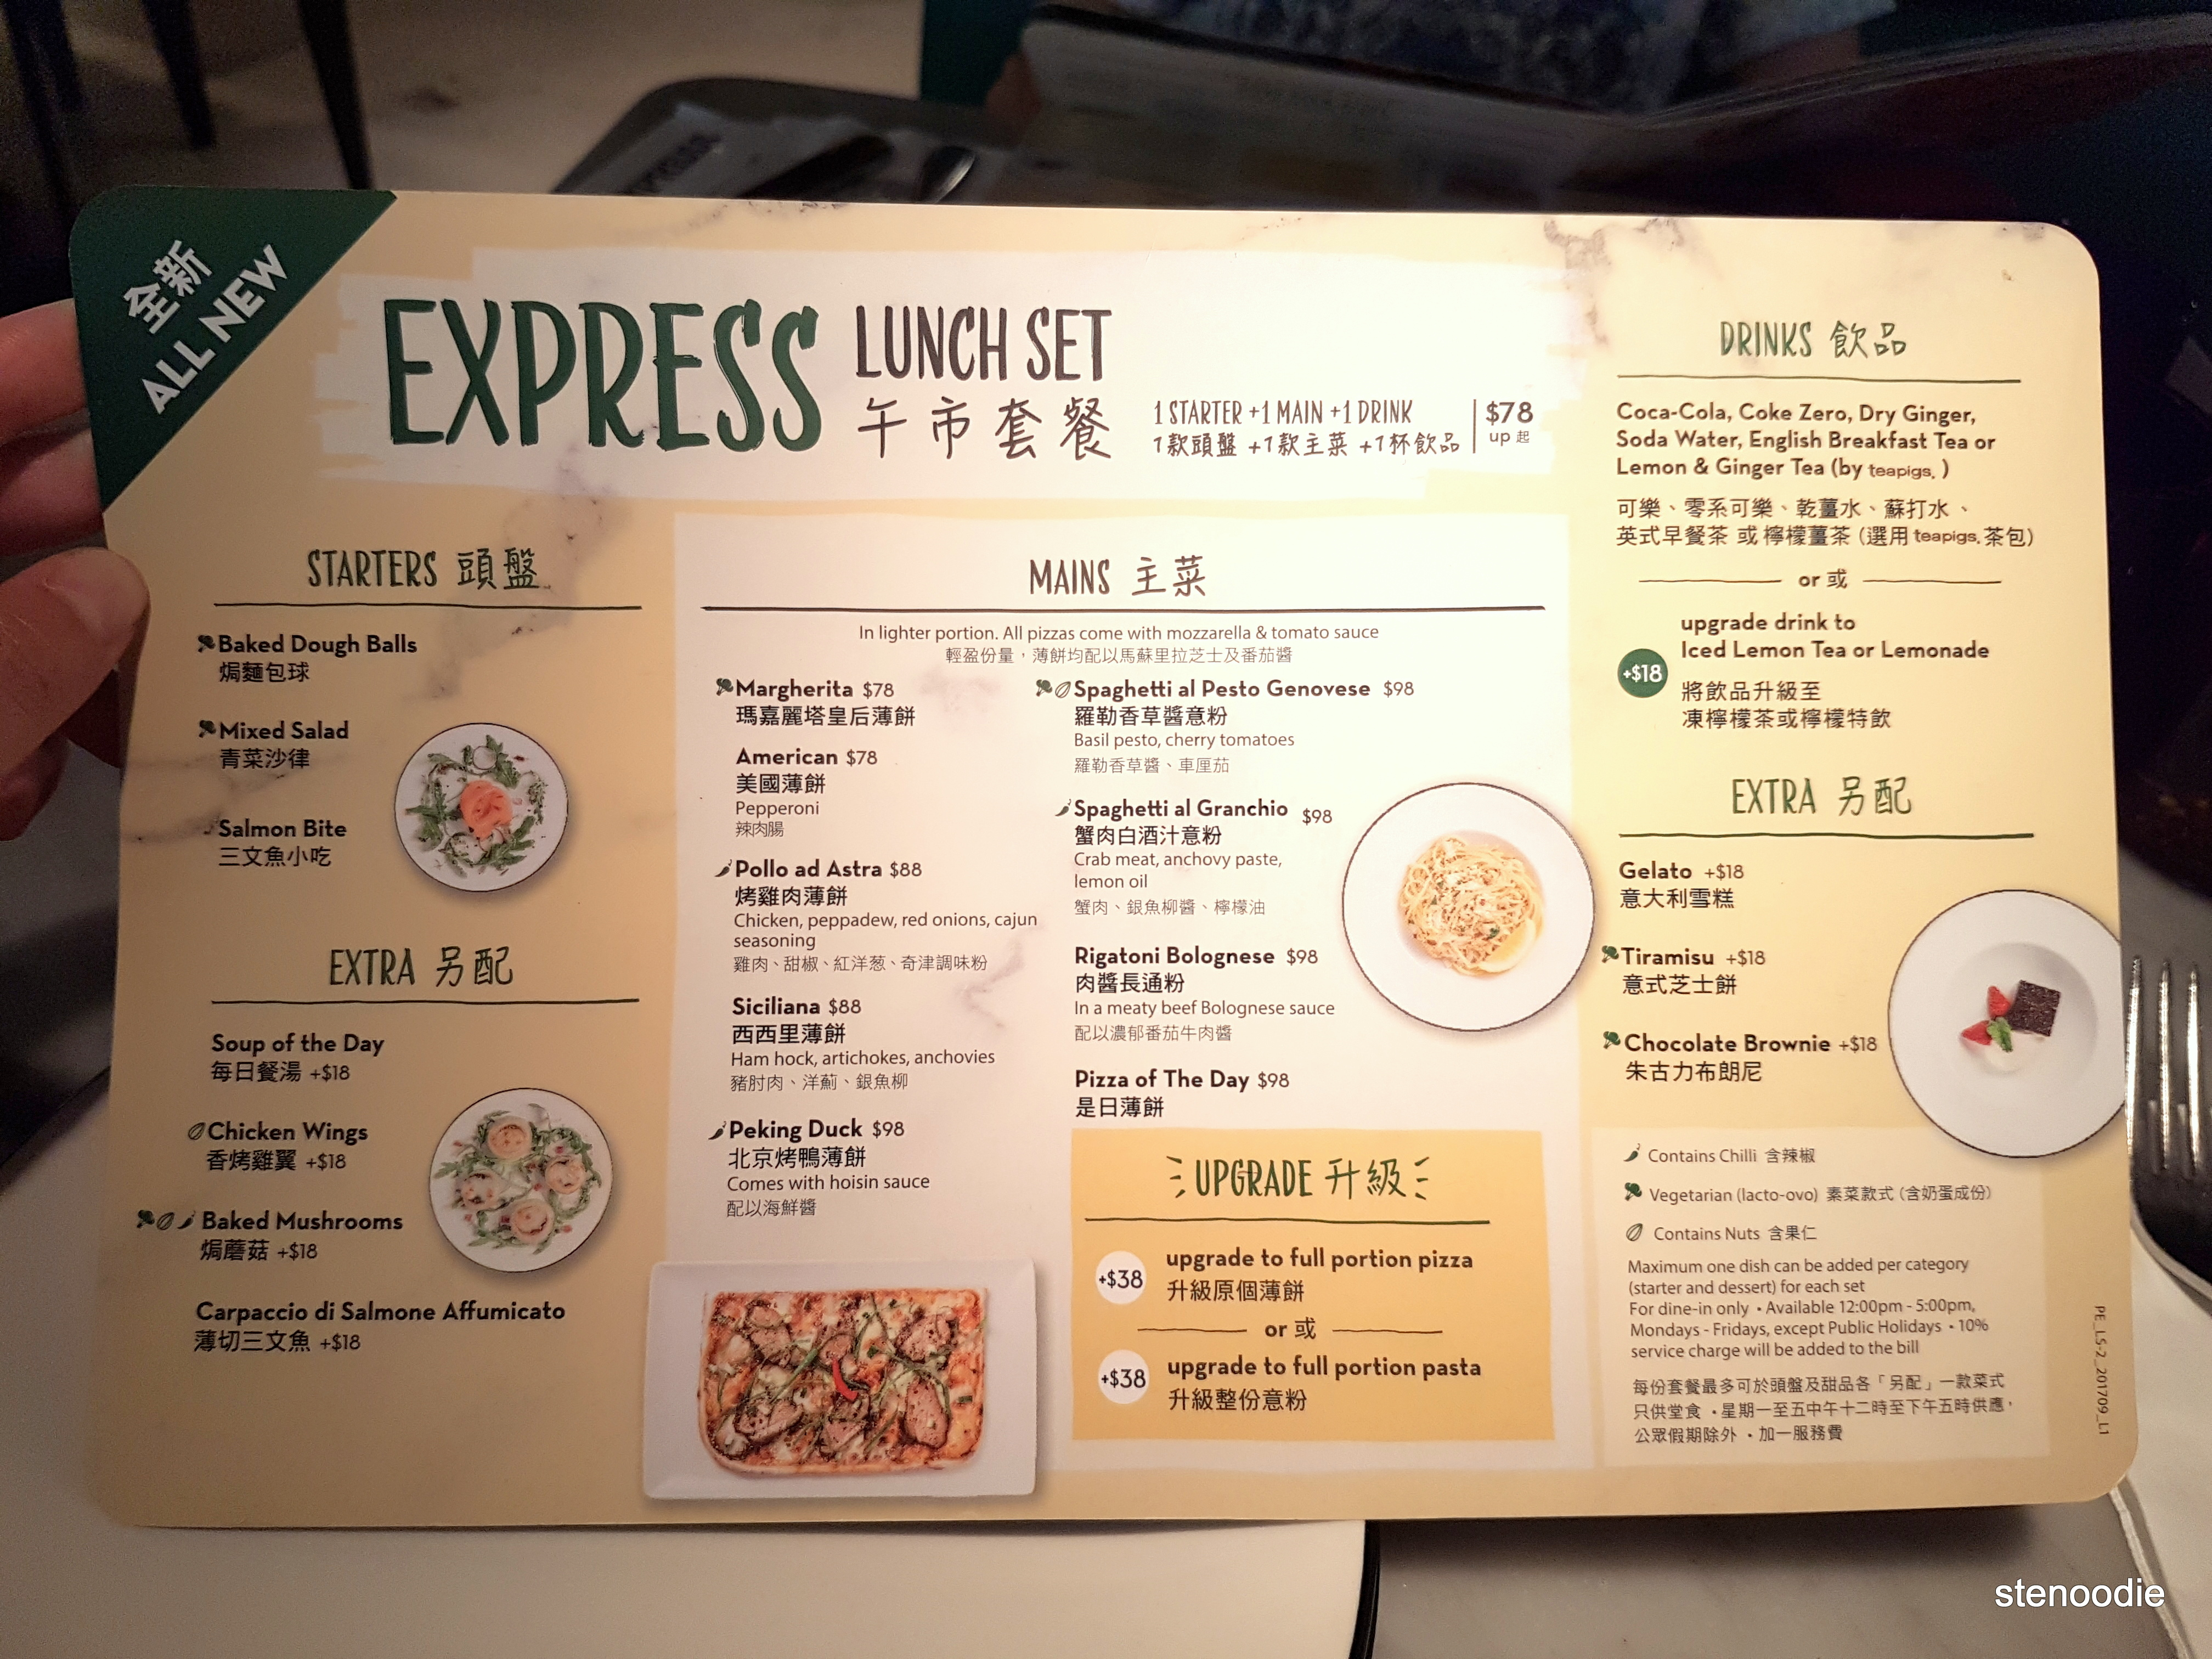 Pizza Express Express Lunch Set menu and prices